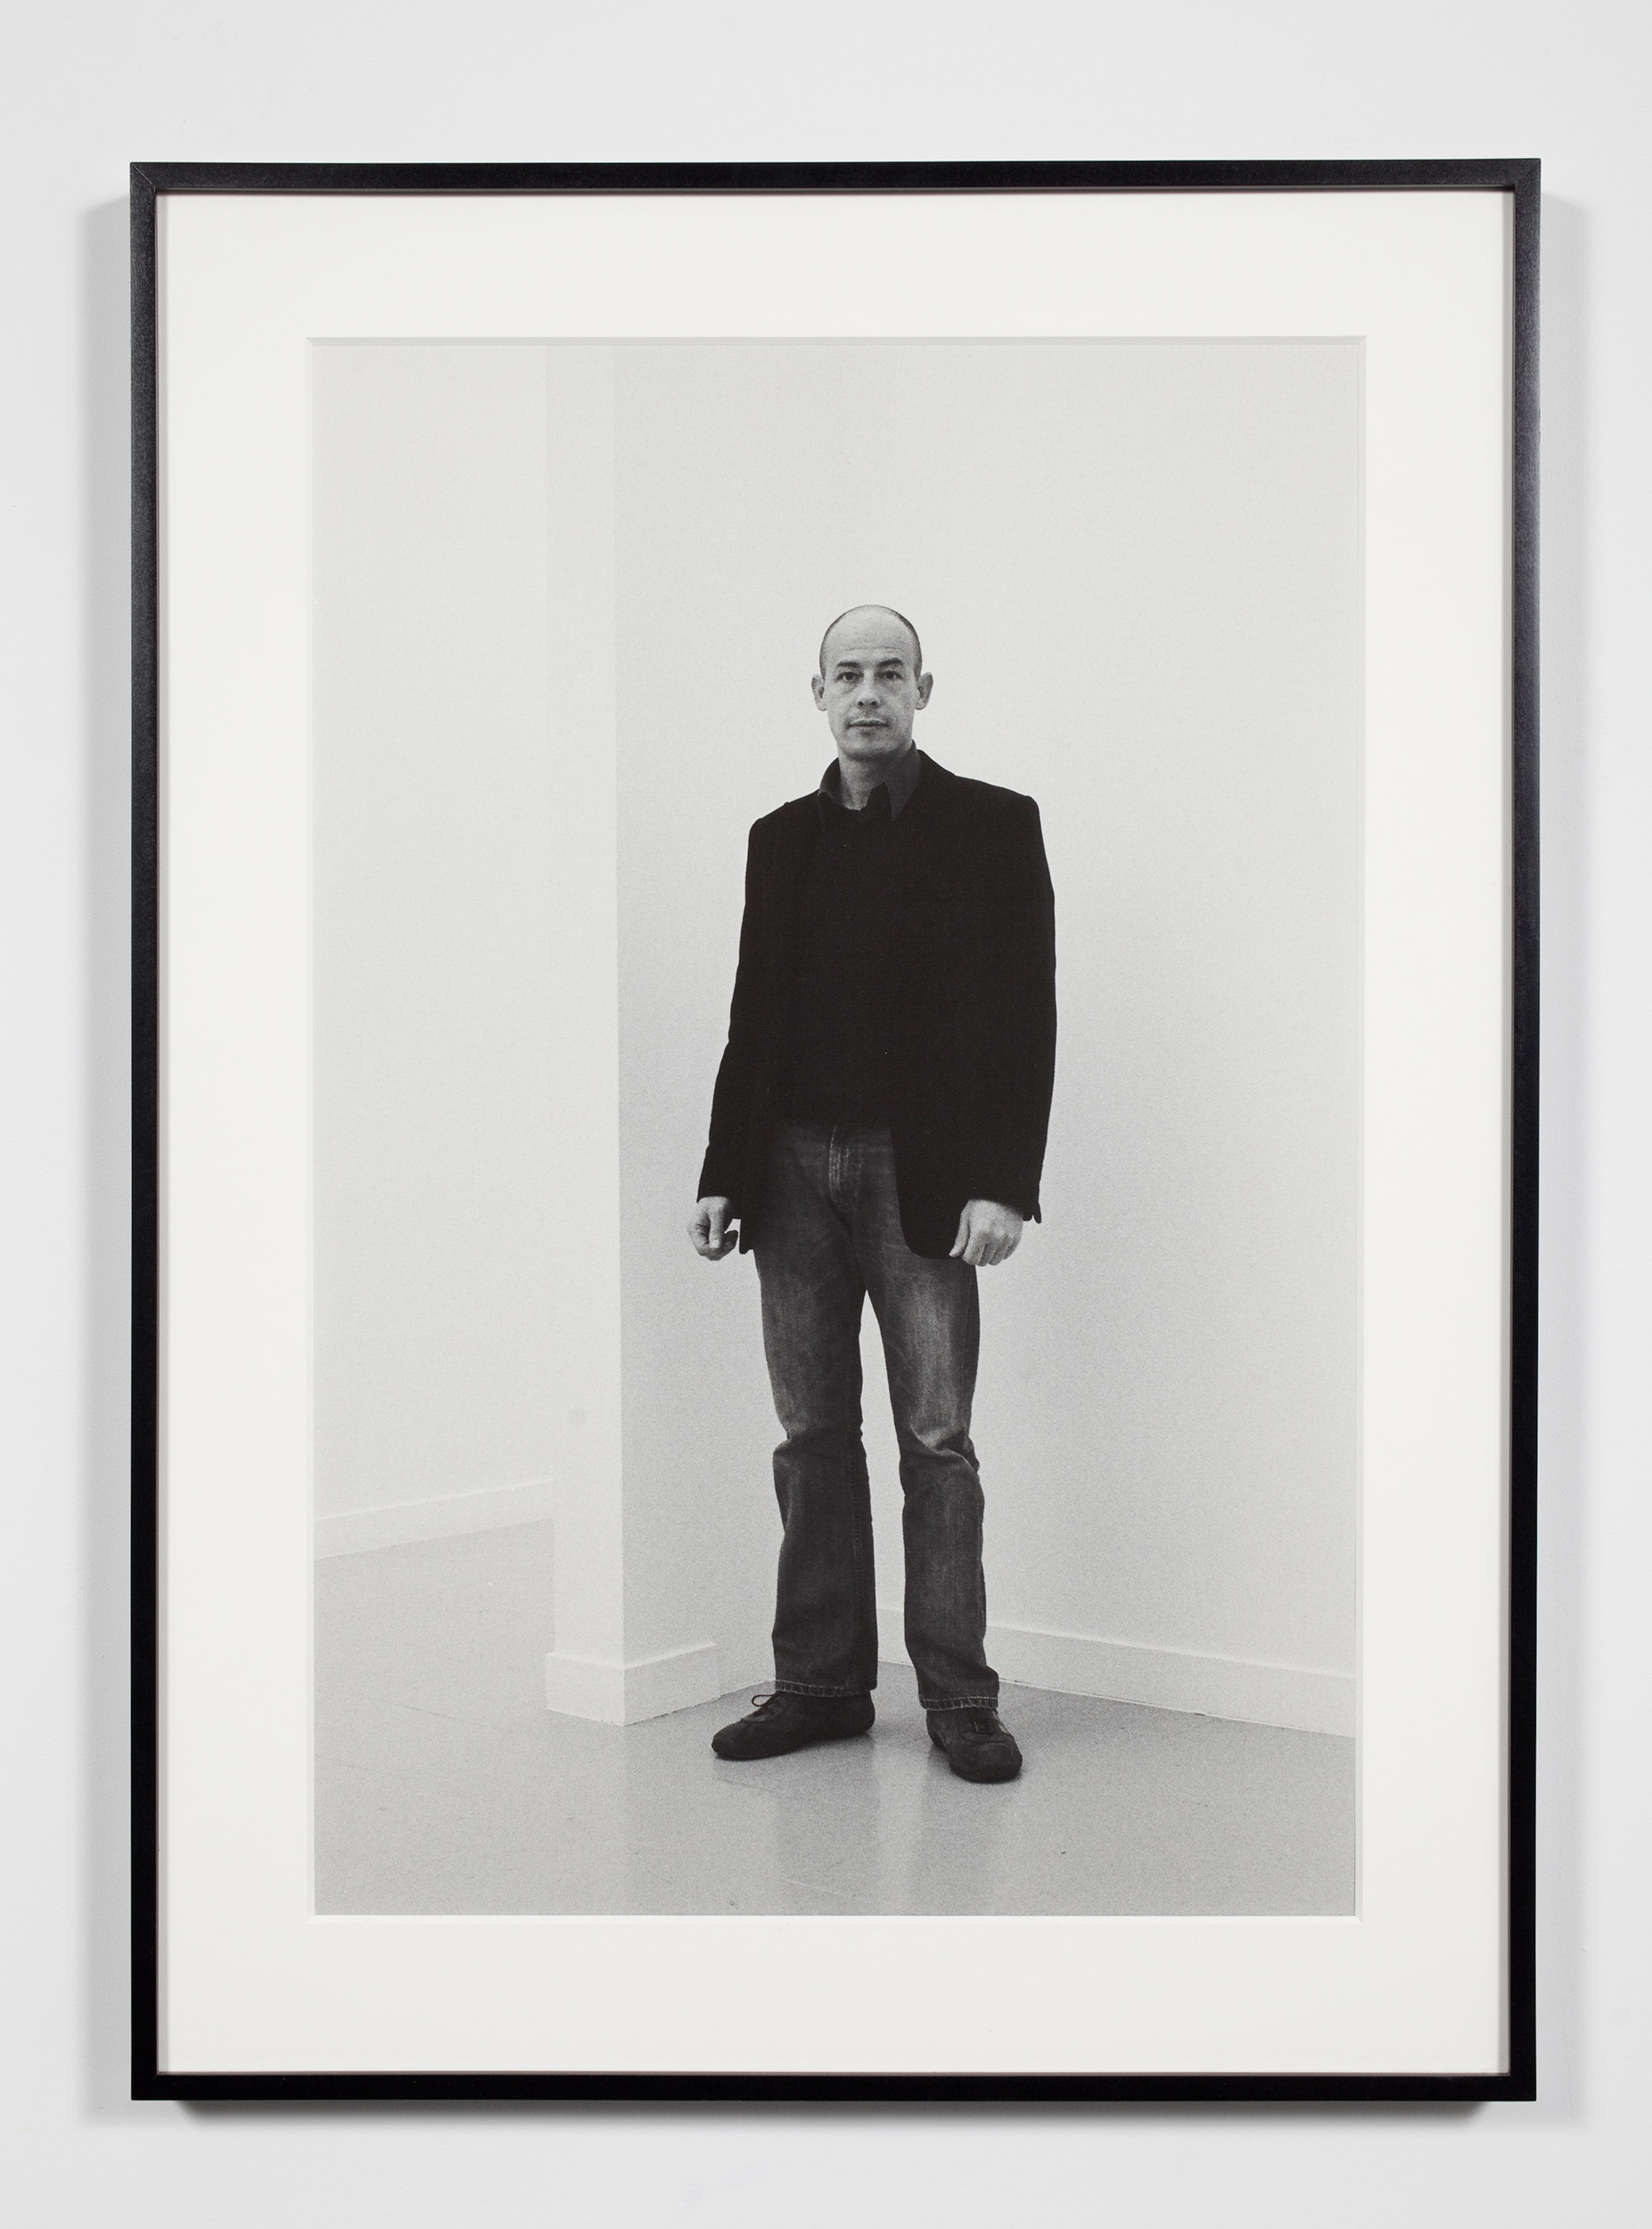 Gallery Director, Brussels, Belgium, November 6, 2008    2011   Epson Ultrachrome K3 archival ink jet print on Hahnemühle Photo Rag paper  36 3/8 x 26 3/8 inches   Industrial Portraits, 2008–